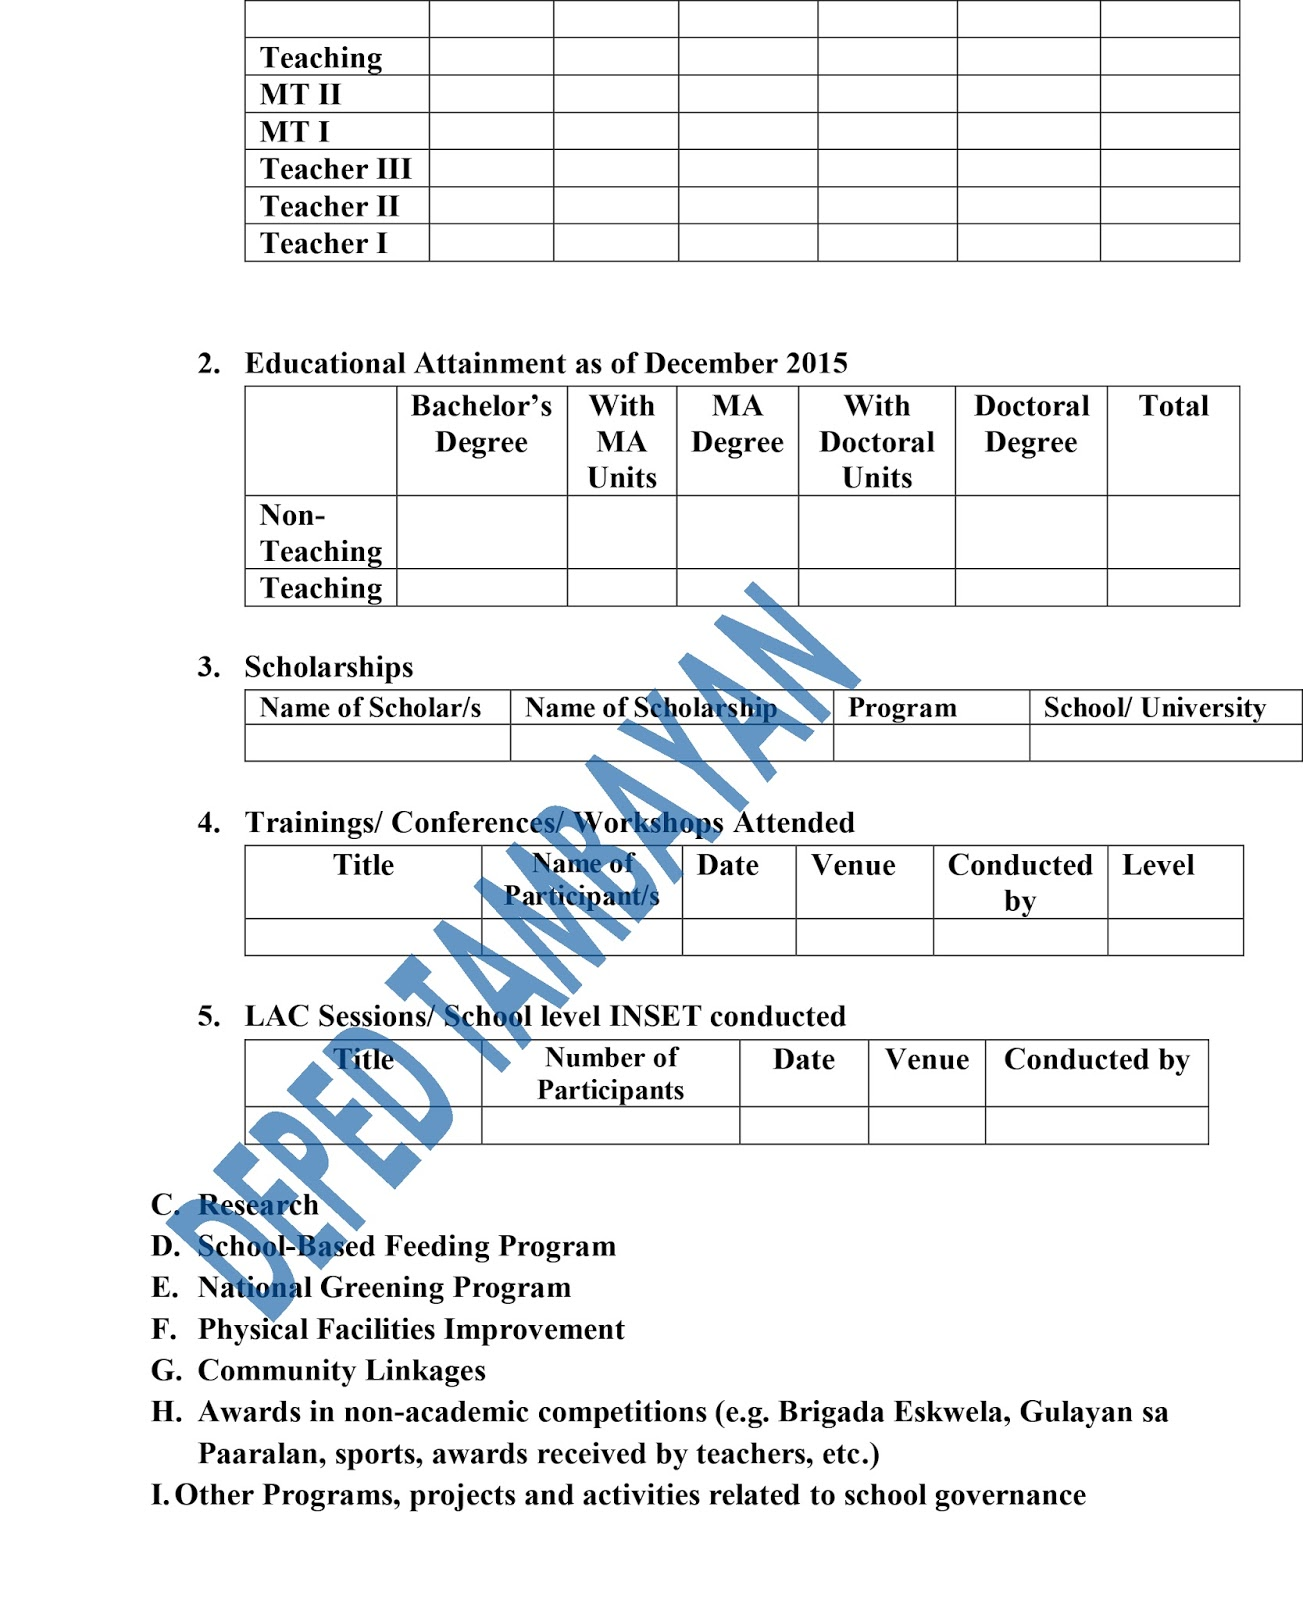 Resume Format In Doc Template  cv curriculum vitae format  cv     JD Edwards EnterpriseOne Financial Reports   company financial analysis report sample